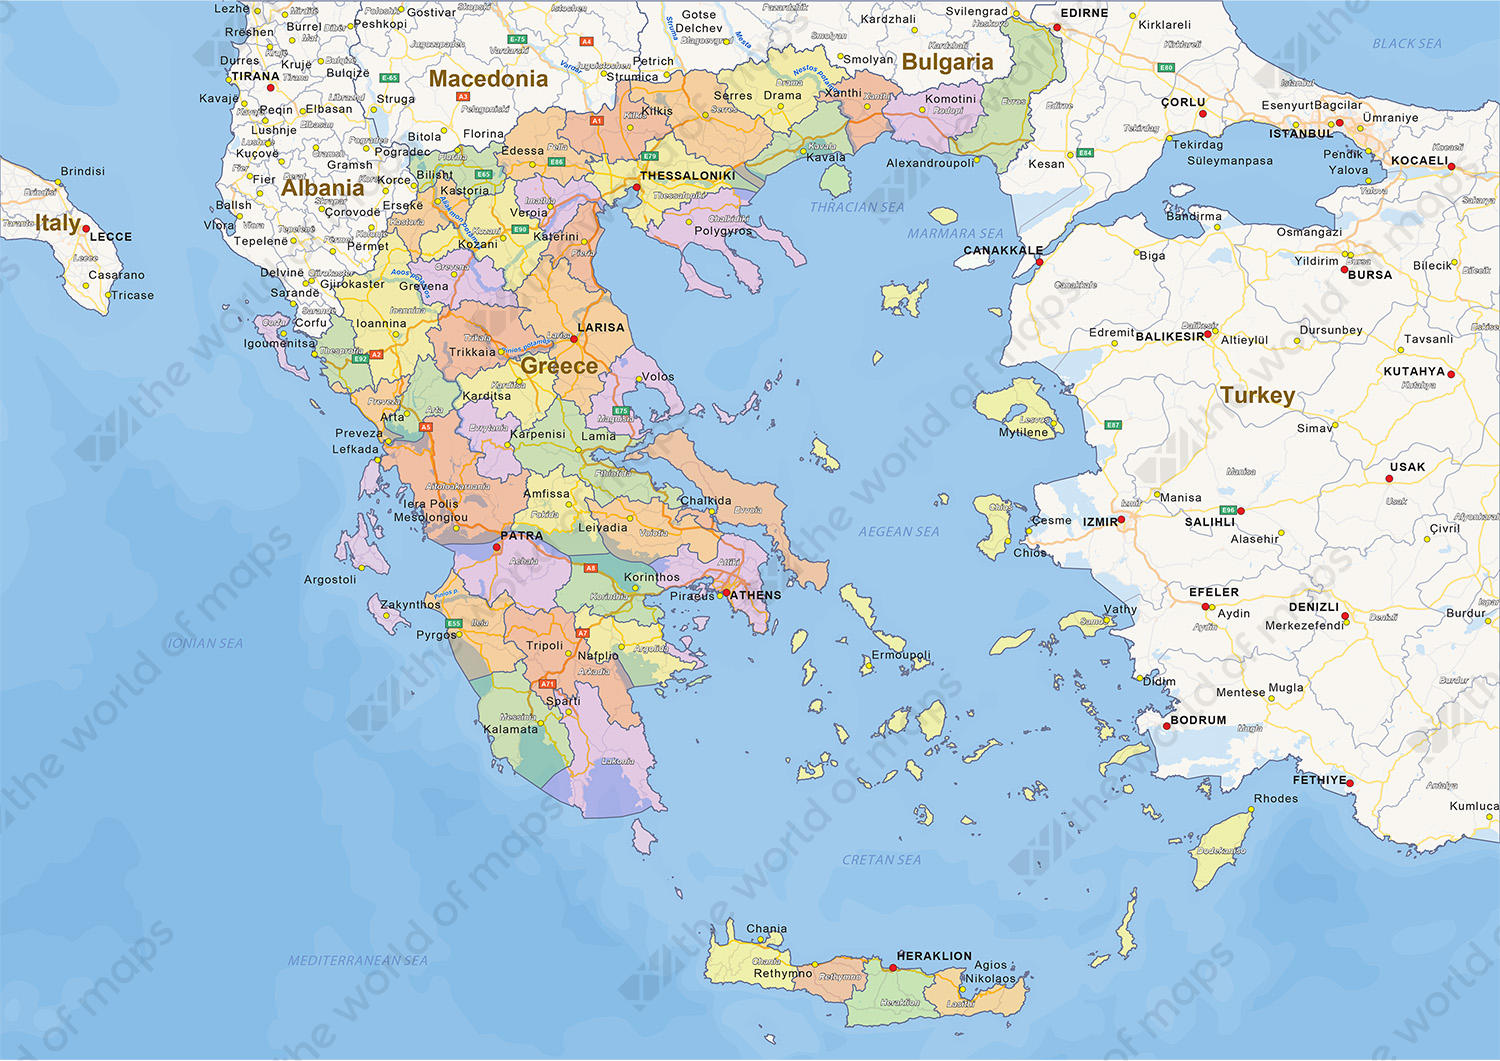 Digital political map of Greece 1438 The World of Mapscom